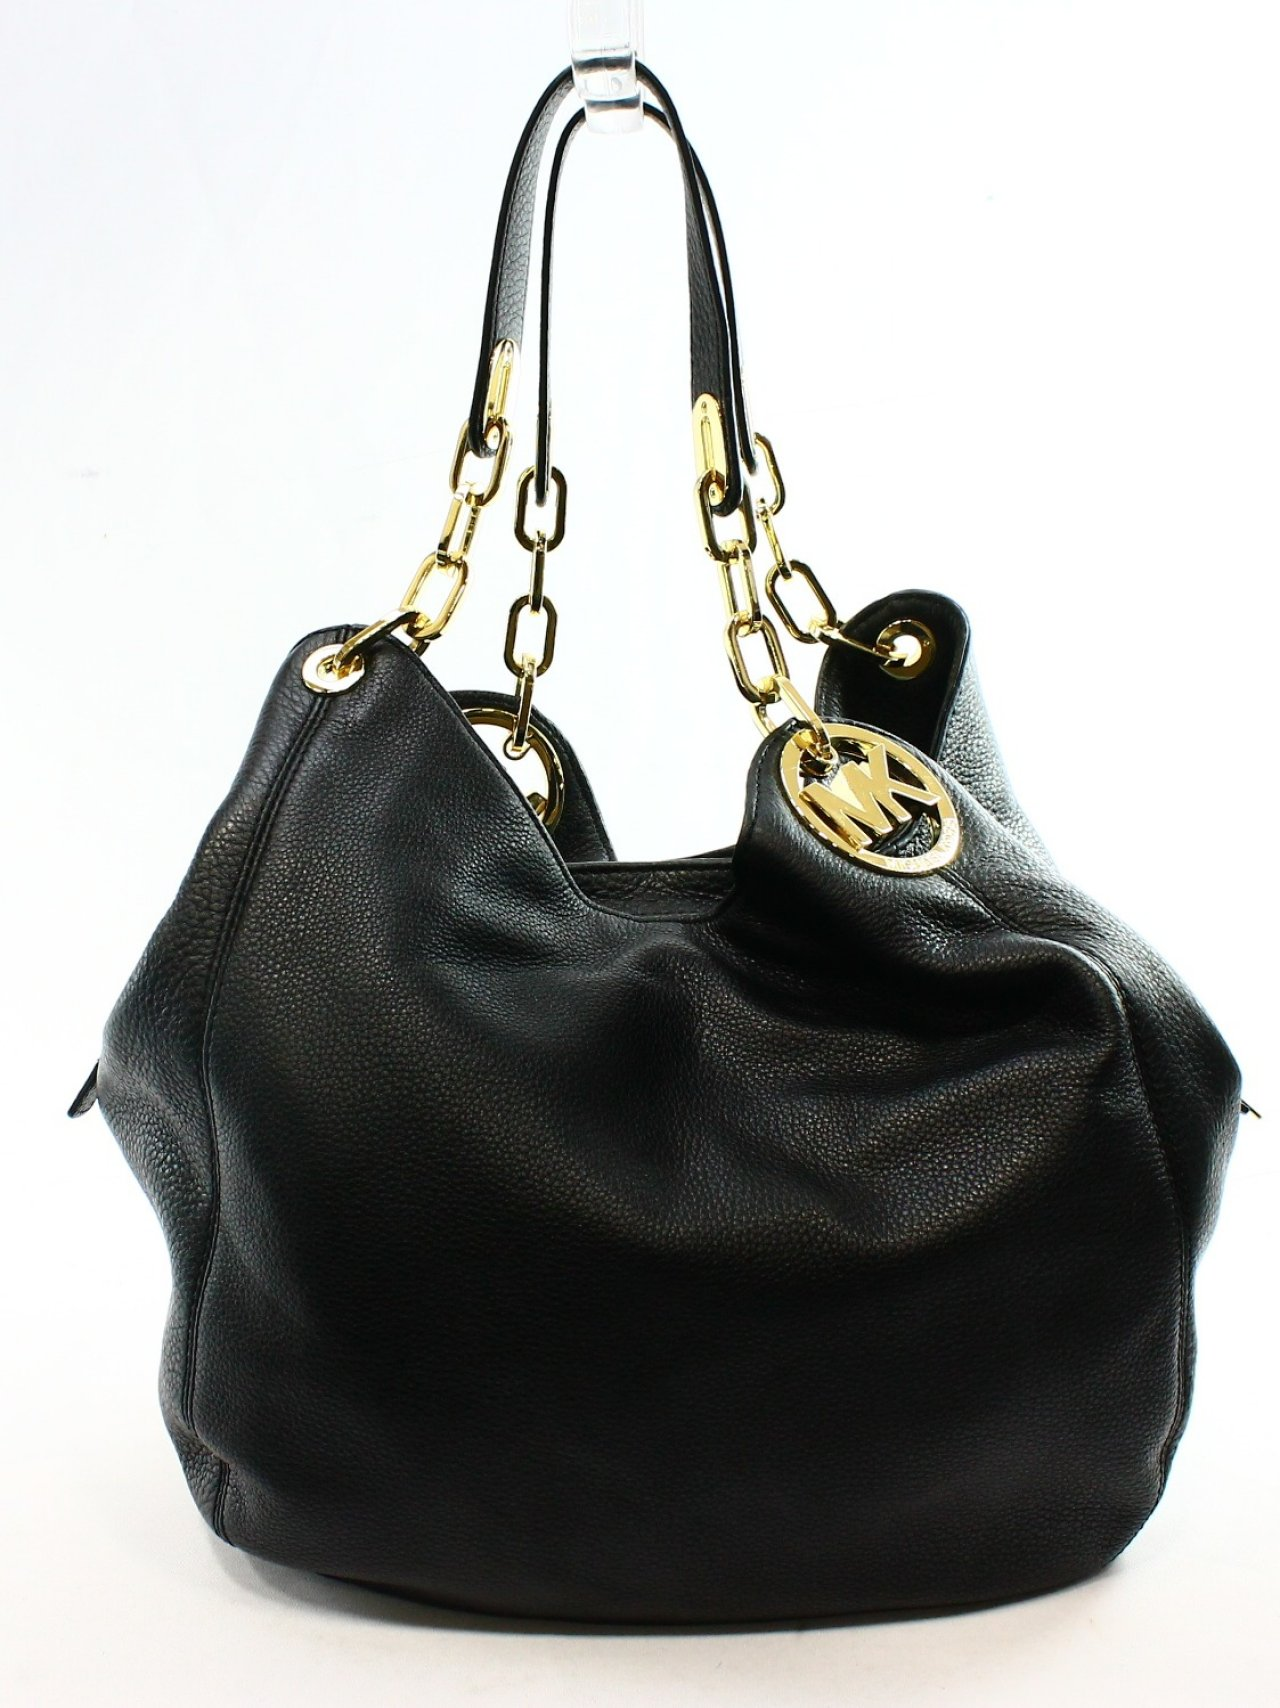 New Zealand Michael Kors Fulton Shoulder - Michael Kors Fulton Black Shoulder Bag